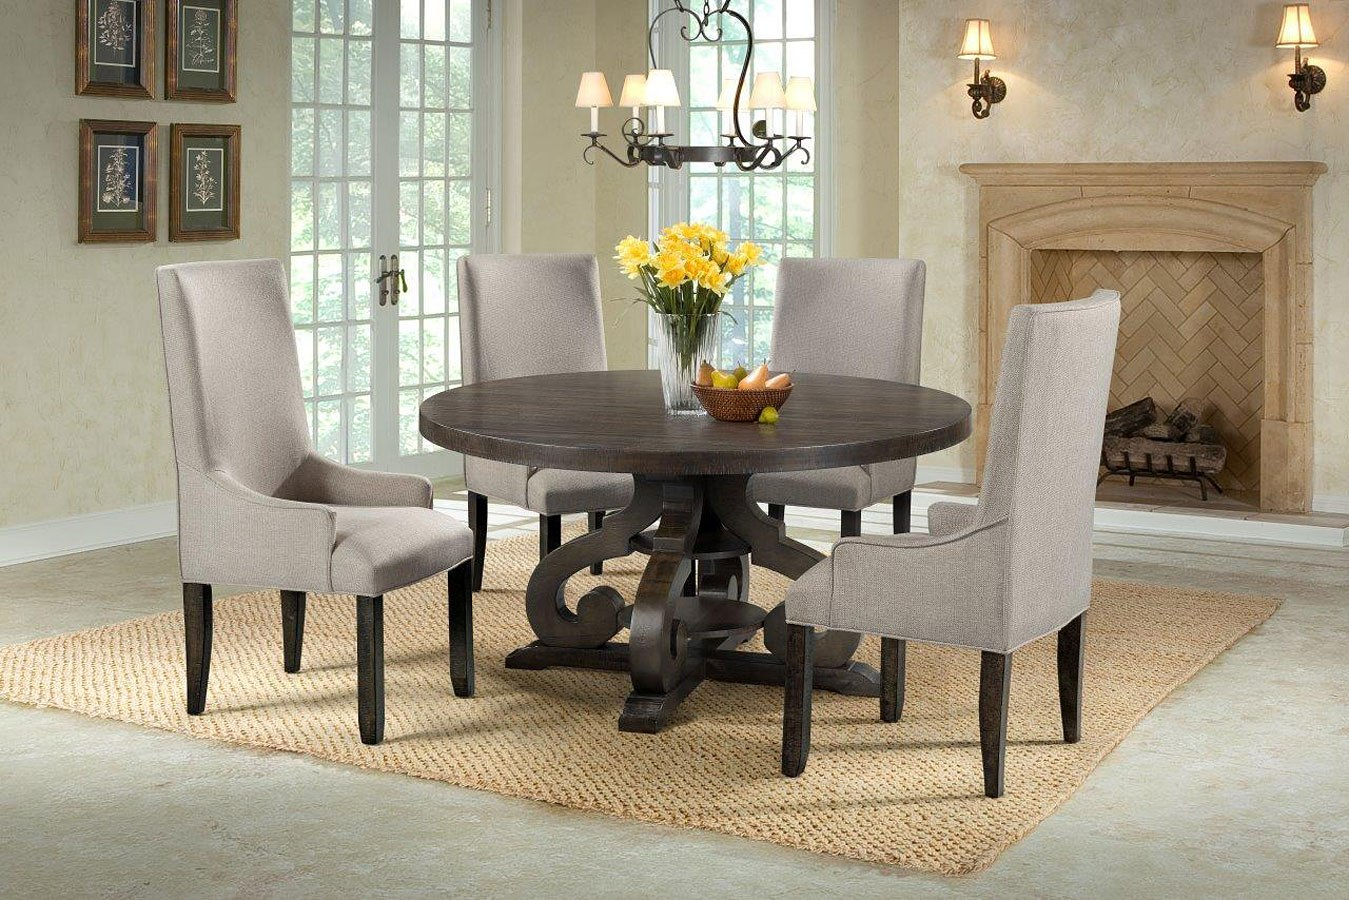 Dining Room Upholstered Chairs Stone Round Dining Room Set W Upholstered Chairs